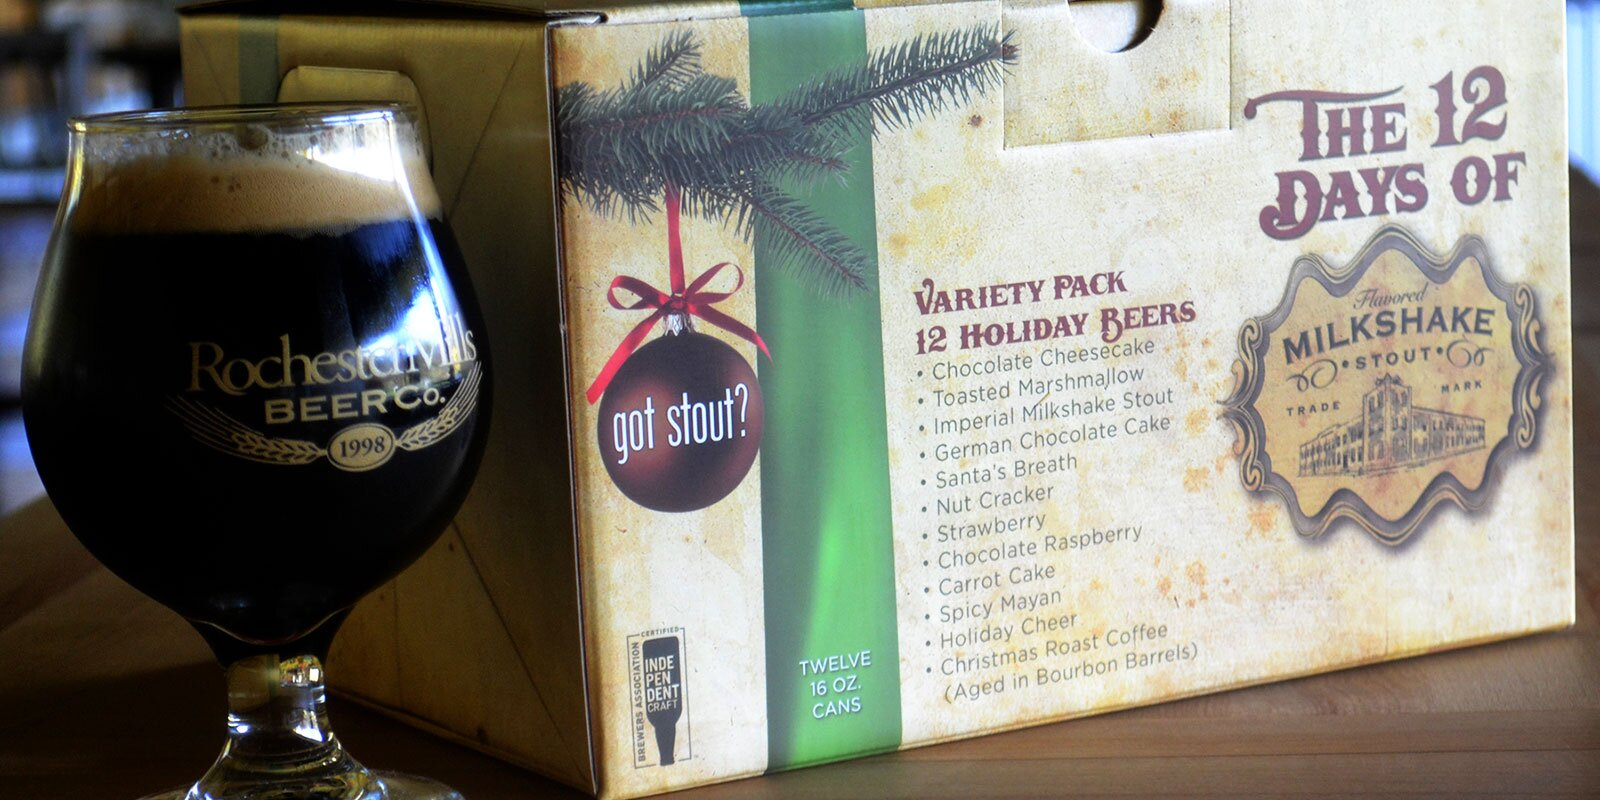 Rochester Mills 2 Days Of Christmas 2021 Get Your Milkshake Stout In A Holiday 12 Pack Yes We Said Milkshake Stout Food Wine